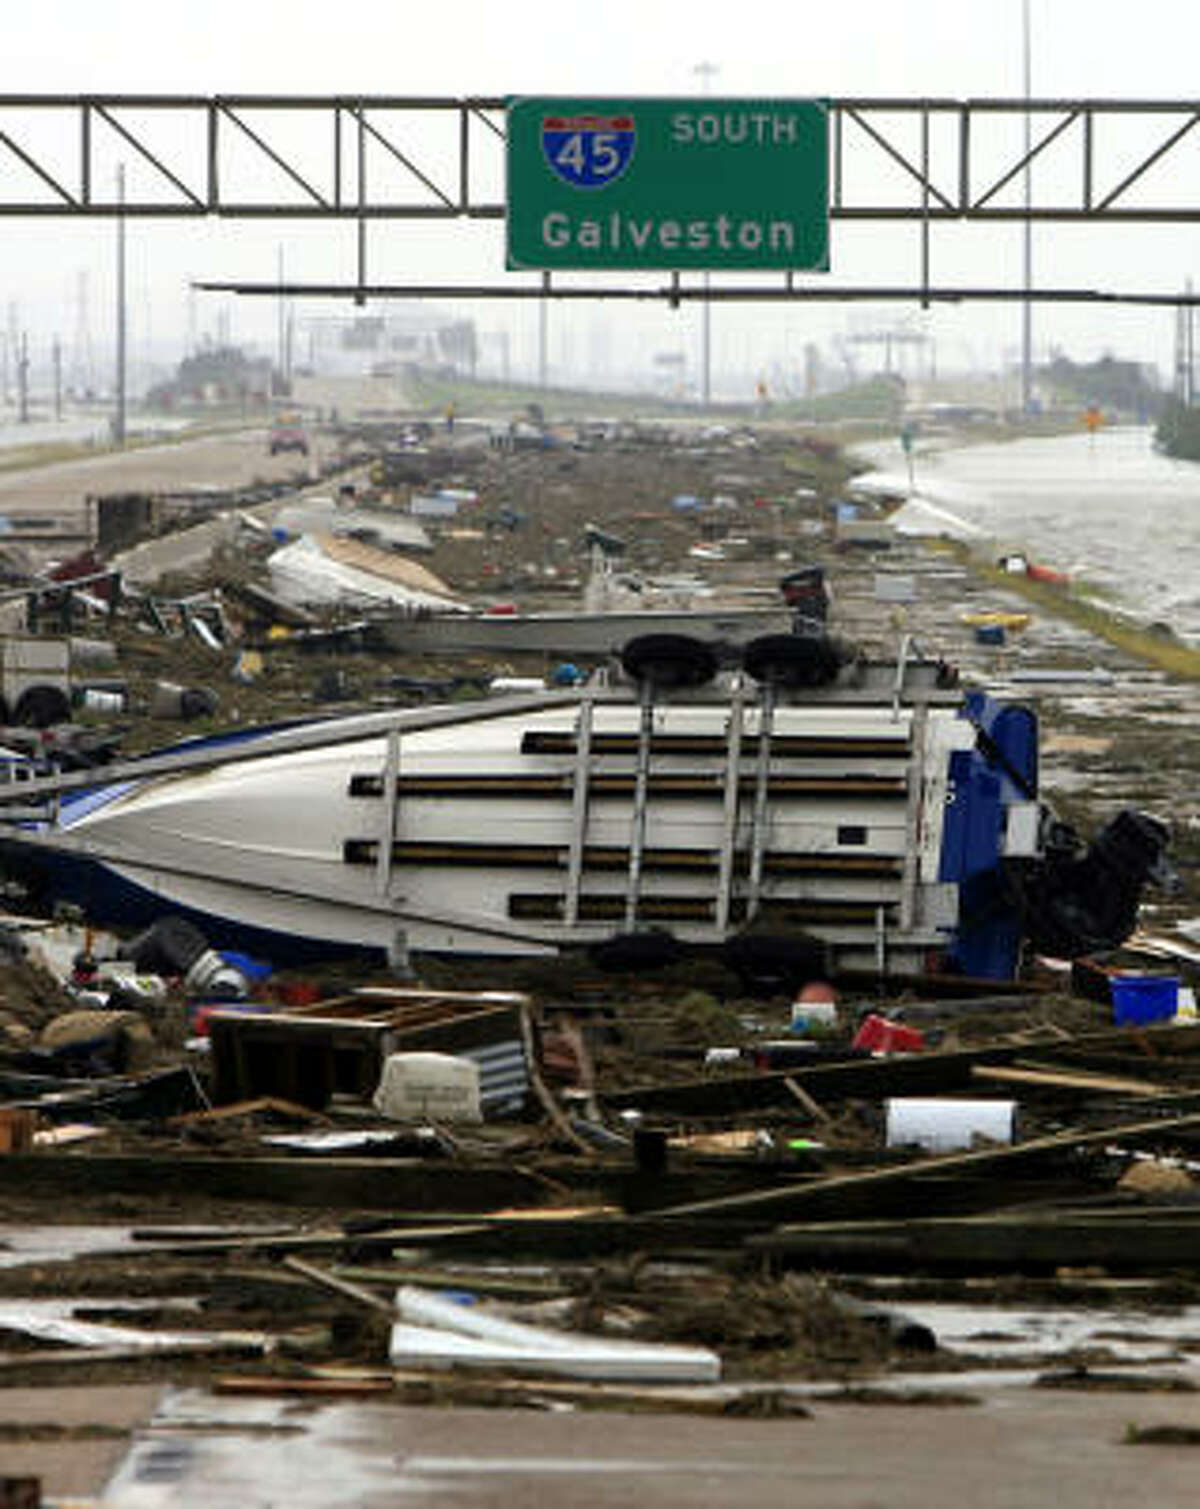 In this photo taken just after the storm, debris blocks Interstate 45. Ike was a Category 2 storm on the Saffir-Simpson scale.